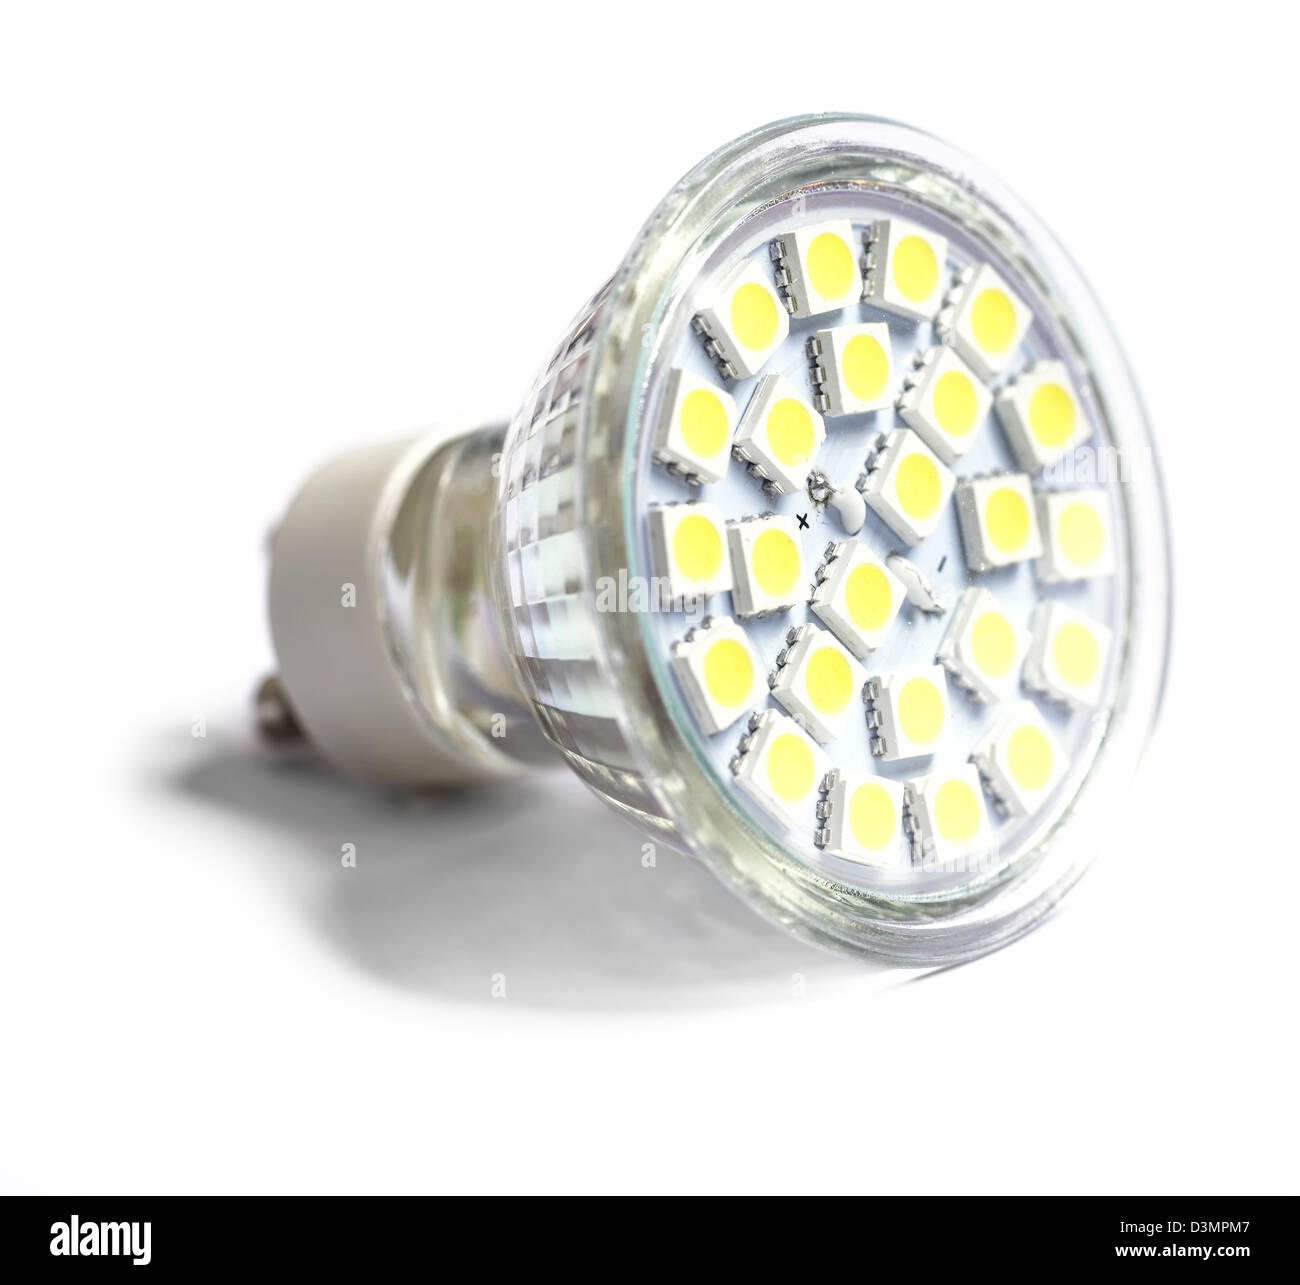 Low energy led spotlight bulb stock photo 53931927 alamy low energy led spotlight bulb aloadofball Images